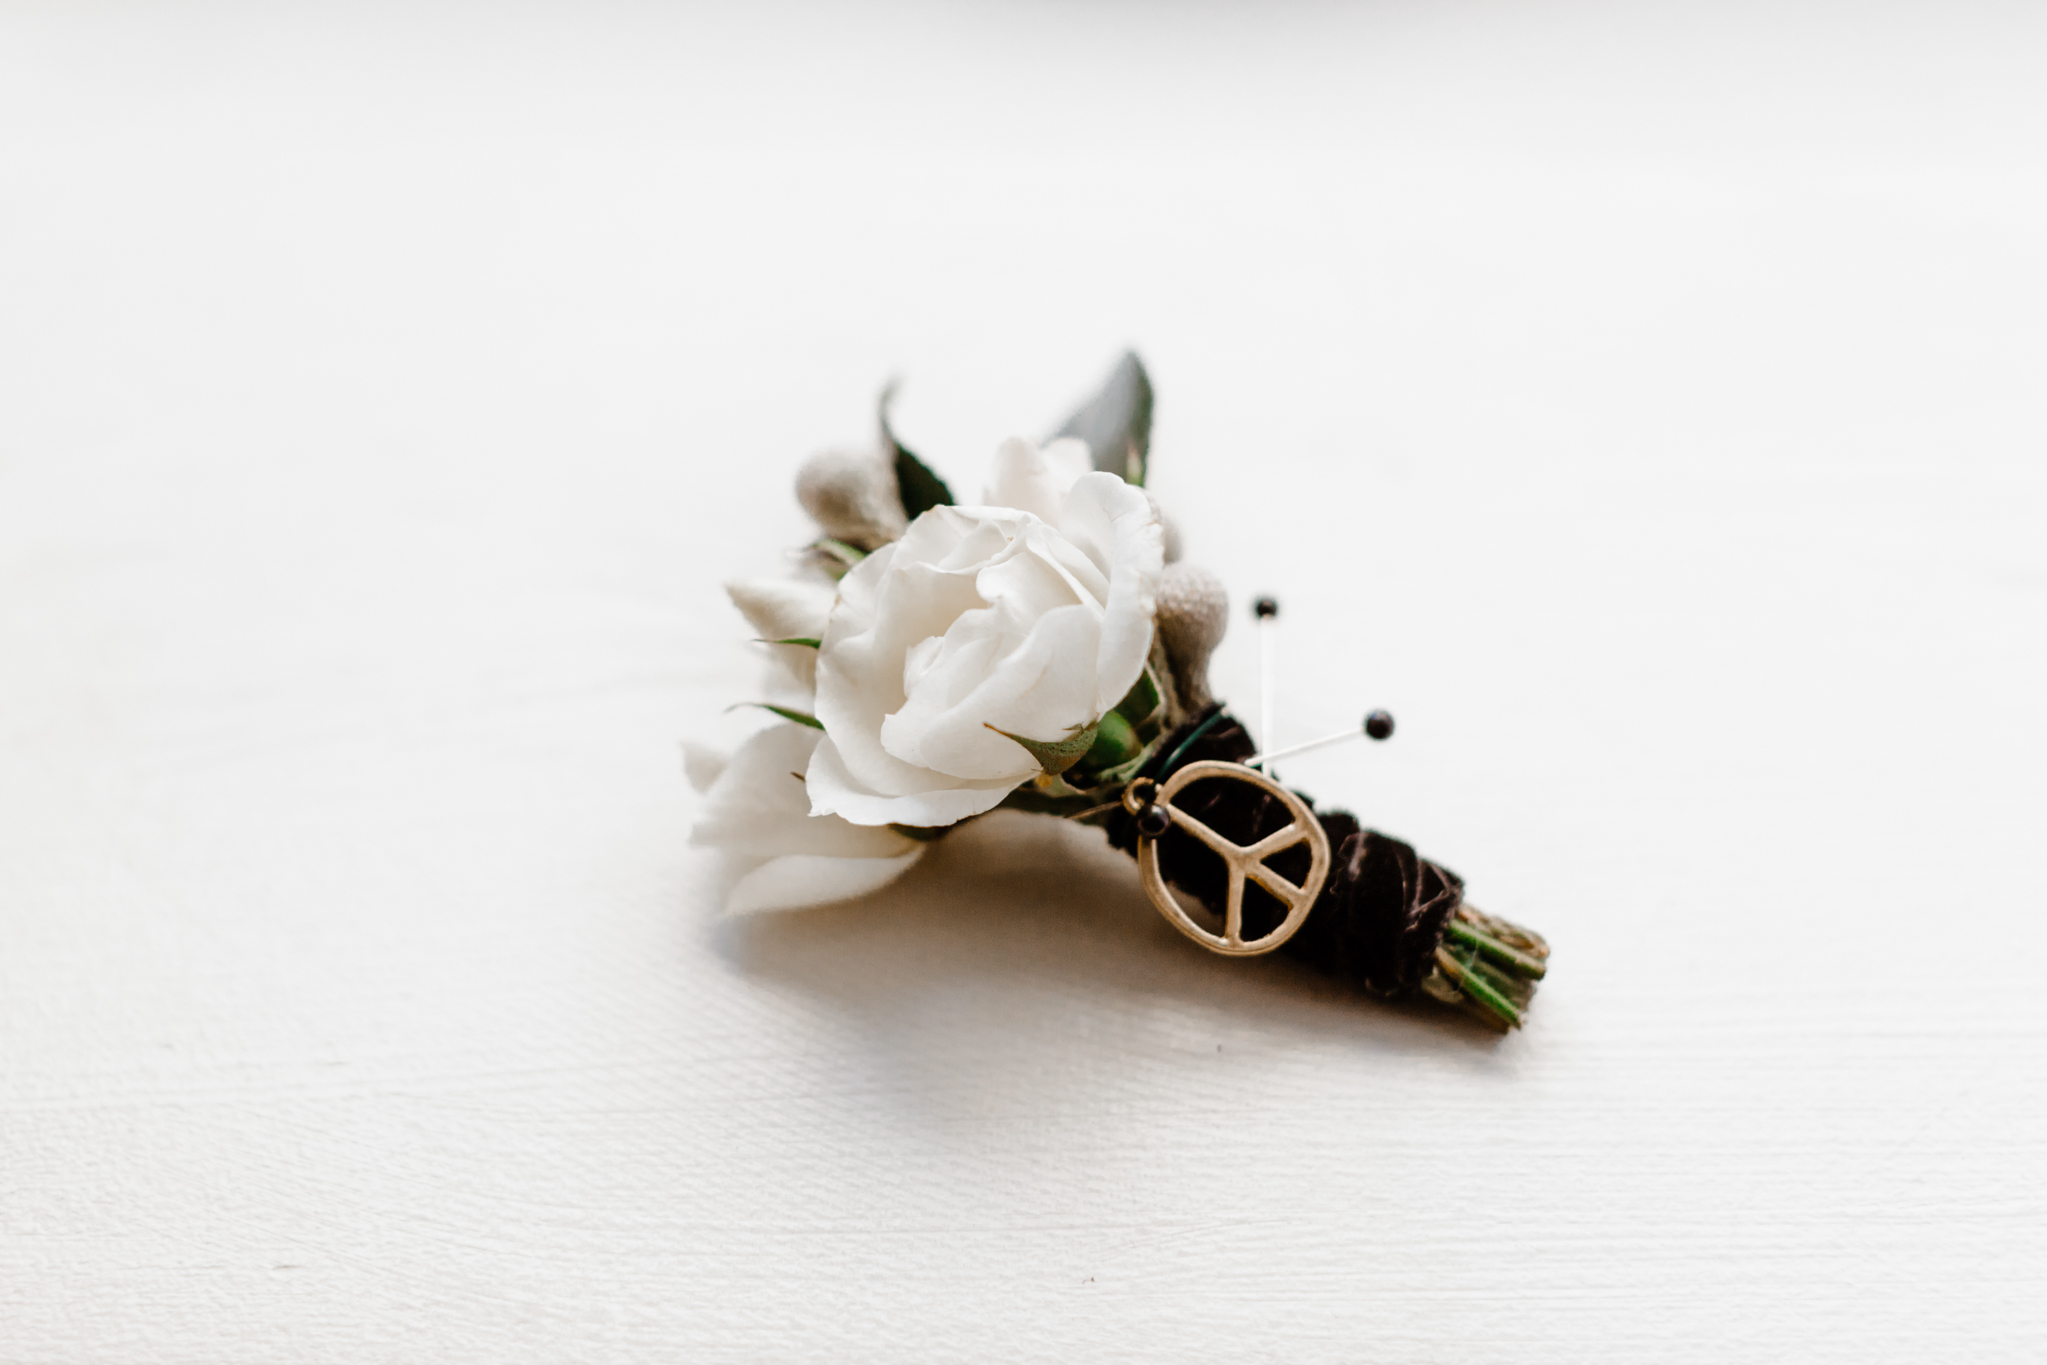 Groom's boutonniere with peace sign charm attached